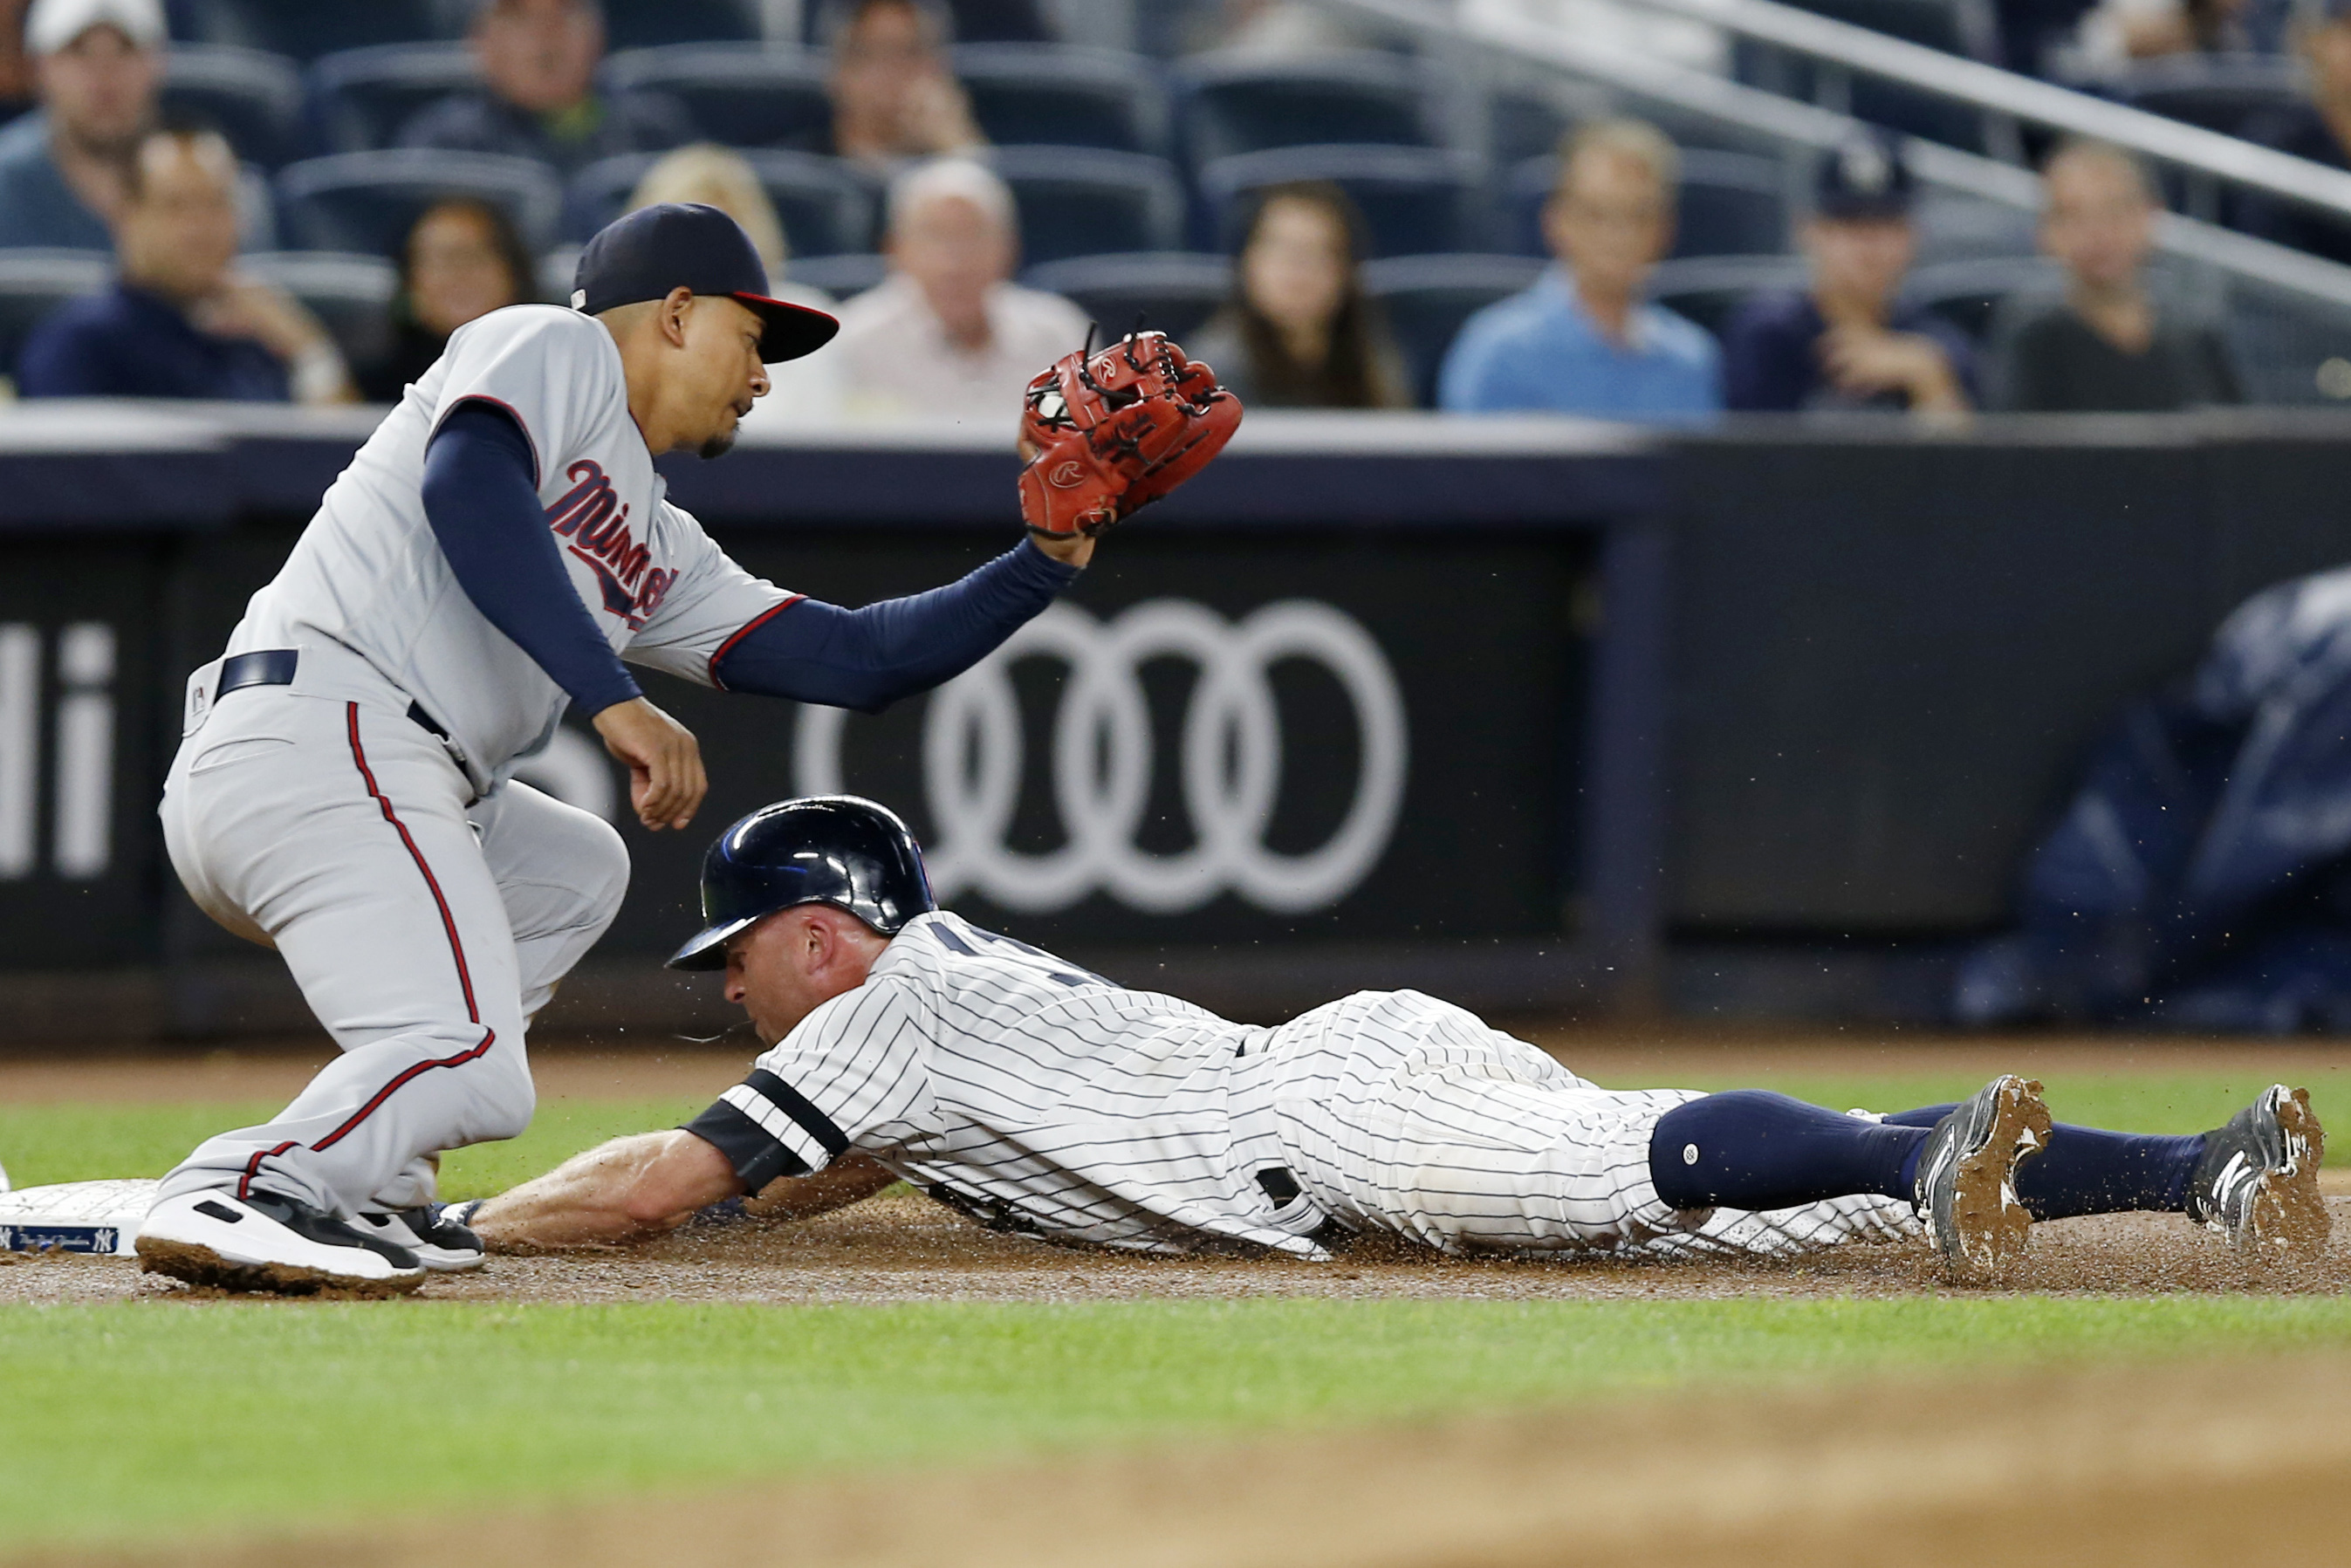 Minnesota Twins third baseman Eduardo Escobar (5) prepares to tag New York Yankees´ Brett Gardner, who is safe sliding into third on Aaron Judge´s fifth-inning flyout in a baseball game in New York, Monday, Sept. 18, 2017. (AP Photo/Kathy Willens)